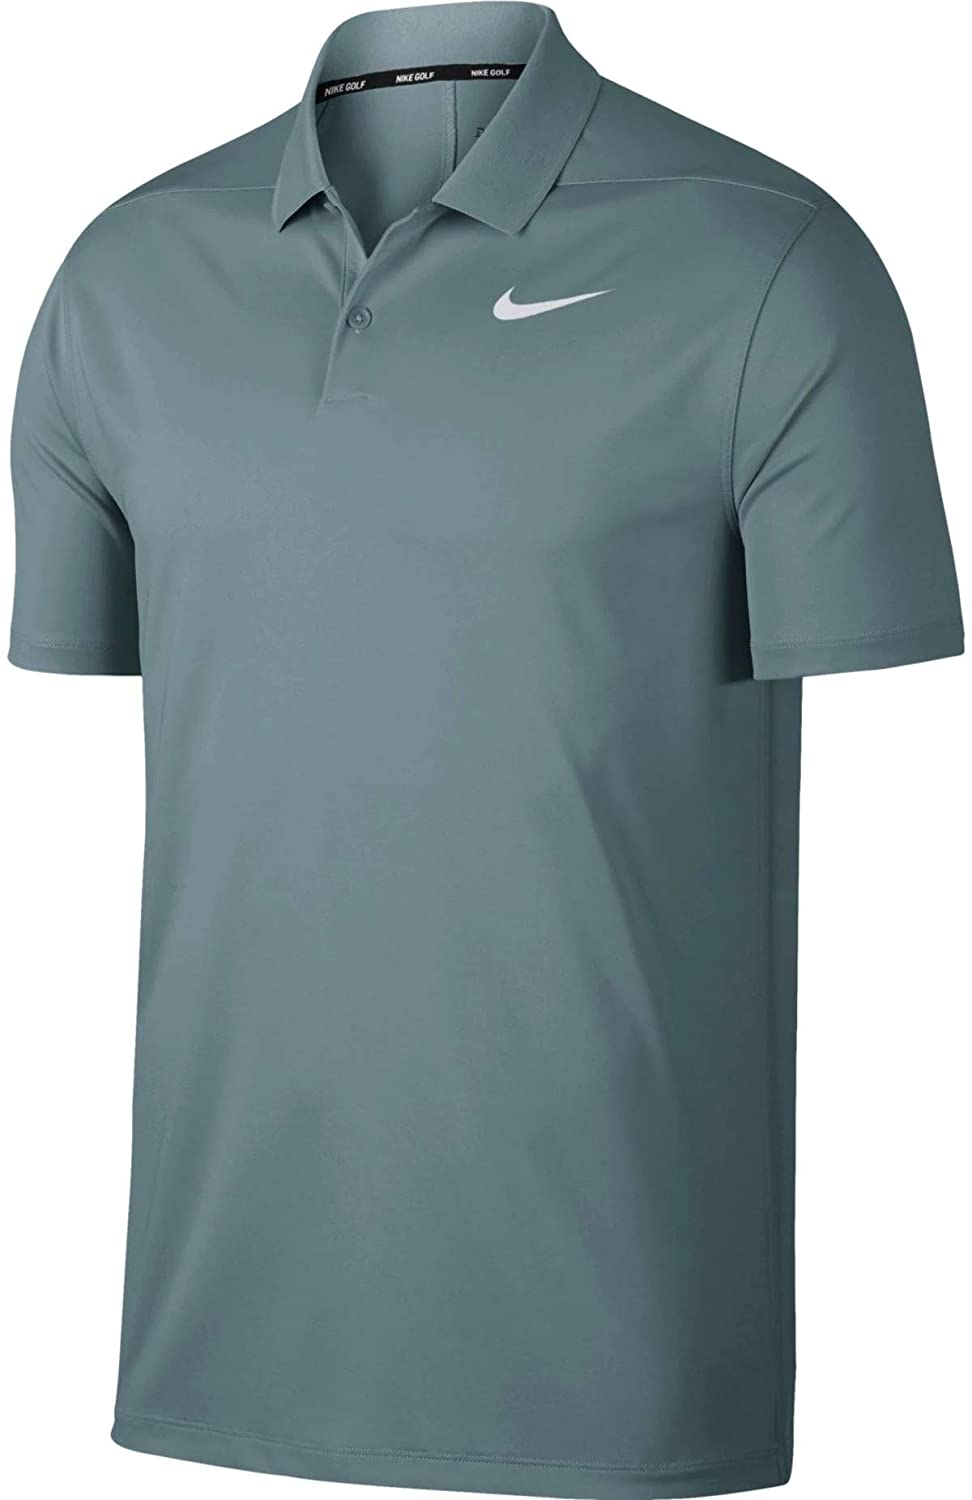 bb469cad7a Nike Men's Dry Victory Golf Polo